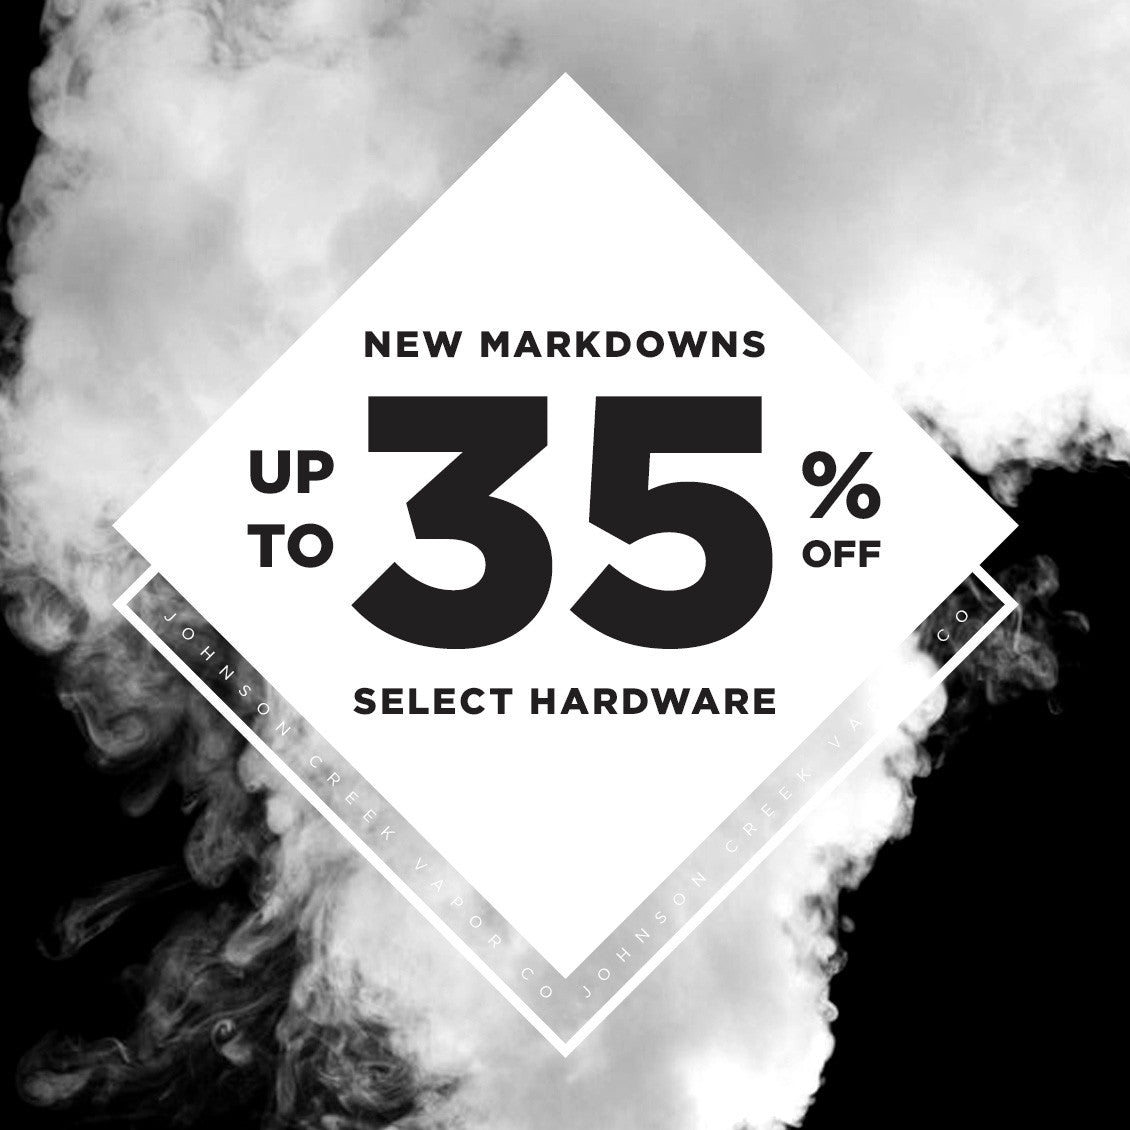 Up to 35% off select hardware. Shop now: